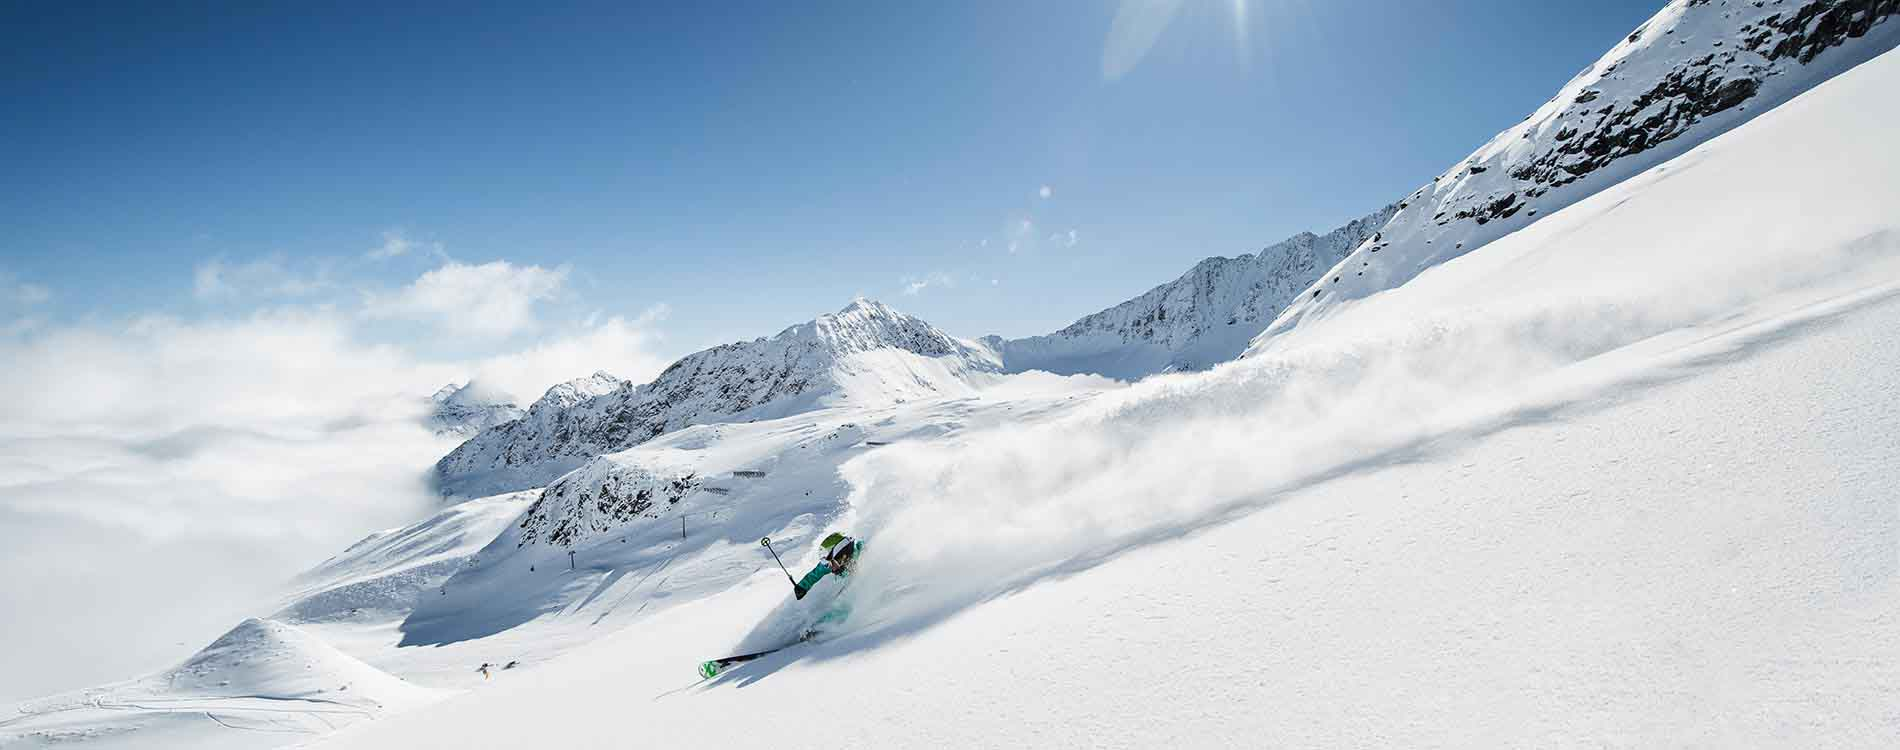 Stubai Super Ski @Happy Stubai Stubai in Neustift in the Austrian Tyrol - Niche Destinations